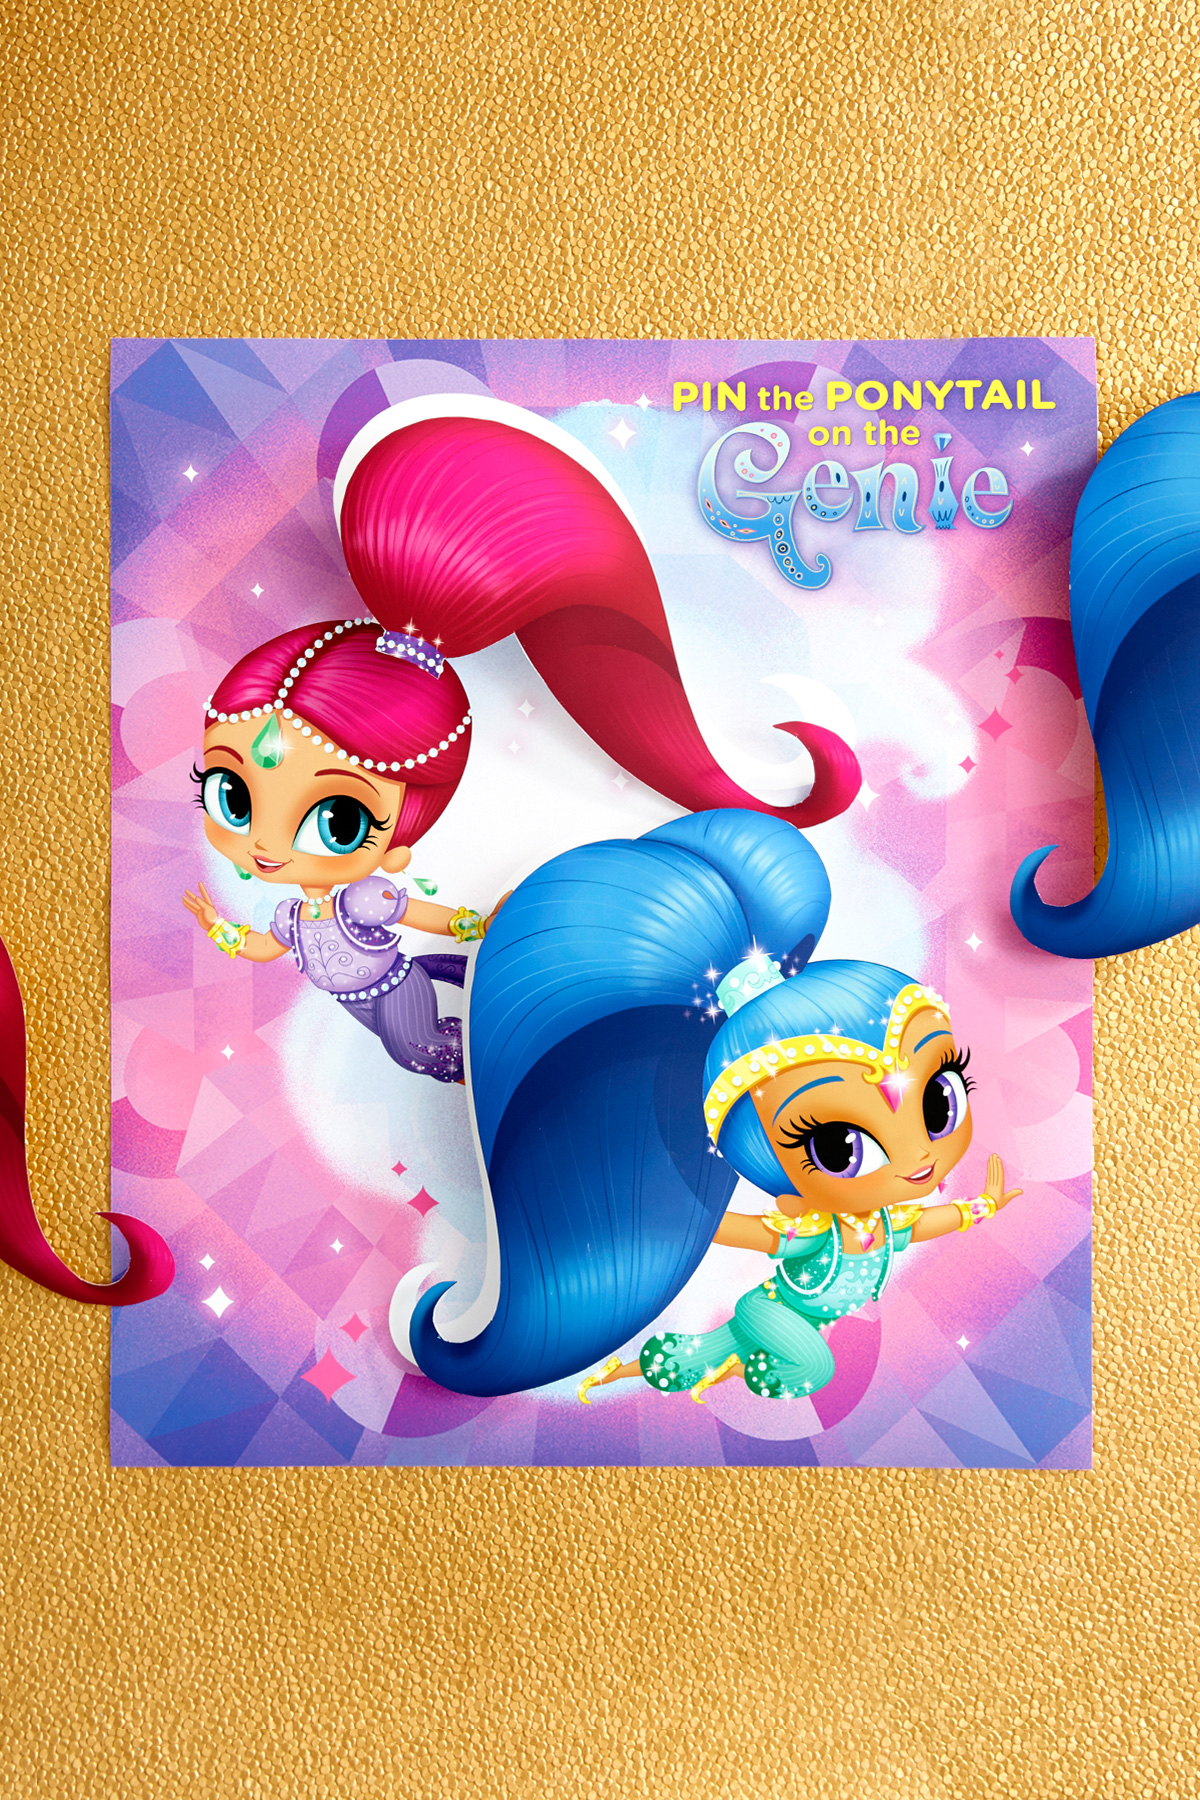 Pin the Ponytail on the Genie